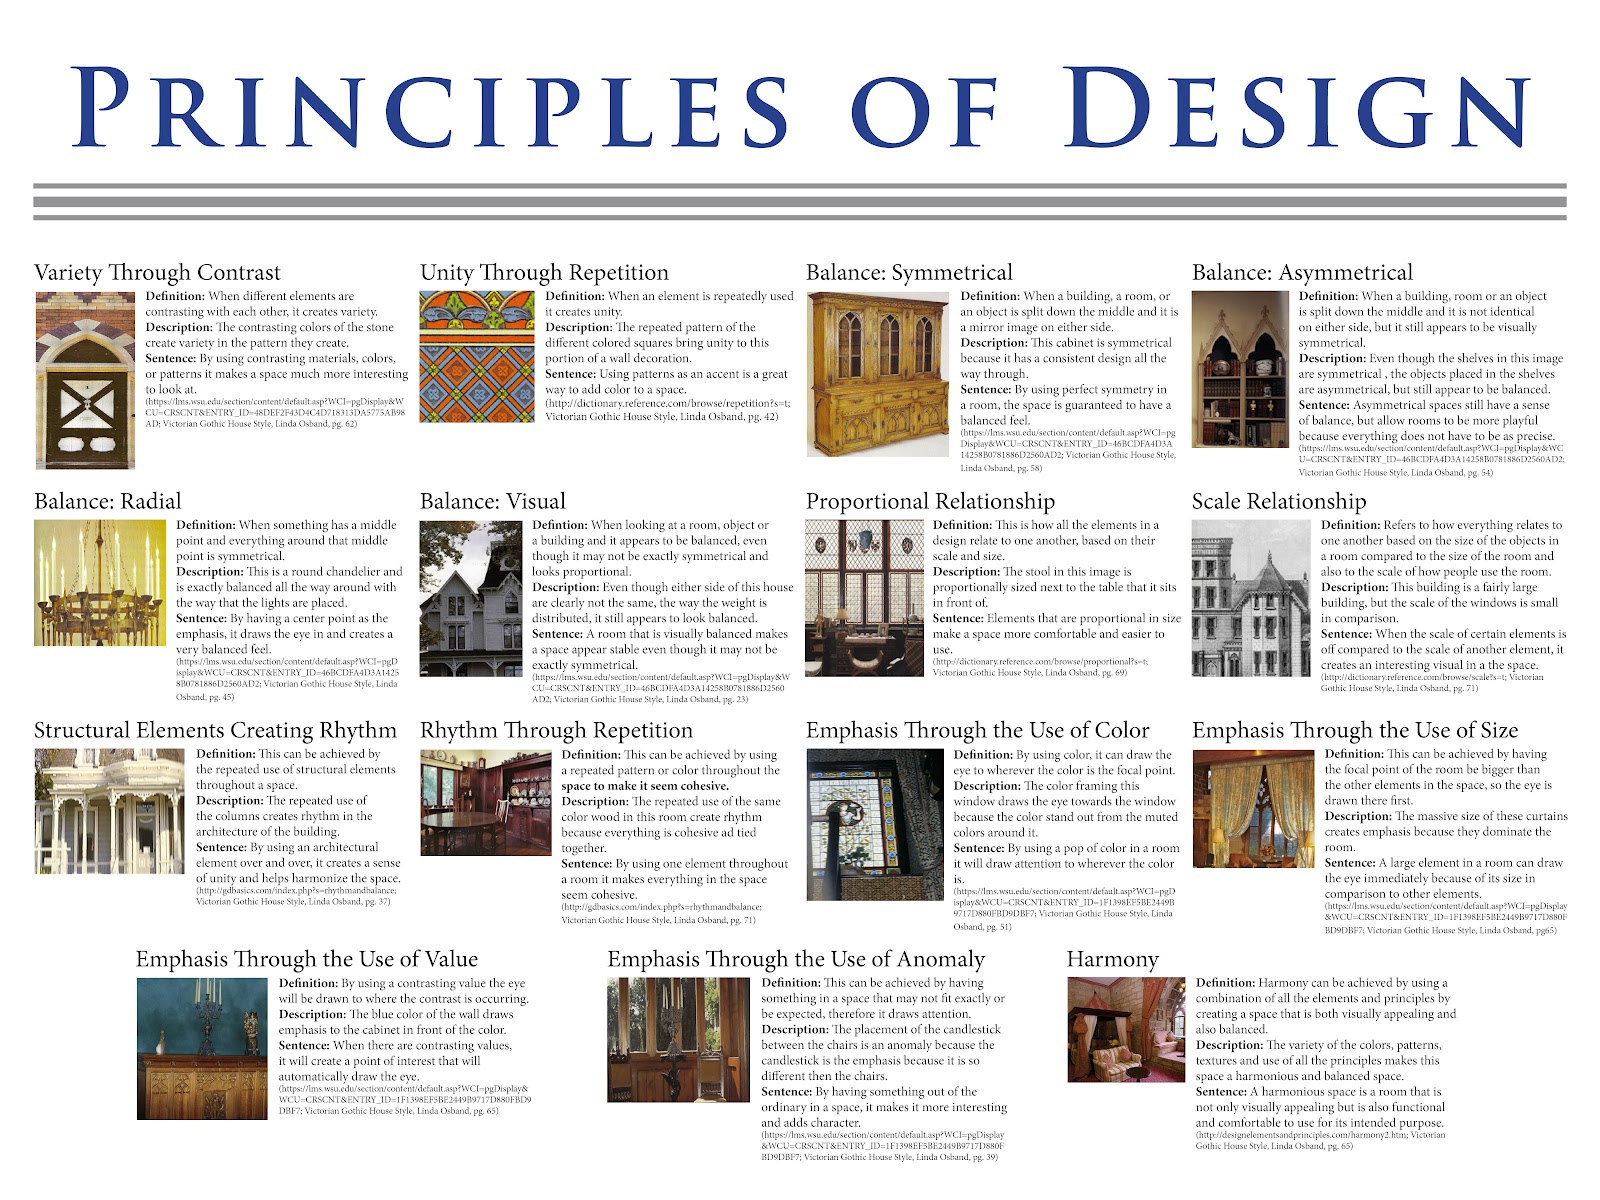 Elements And Design : Annie borges design portfolio principles of